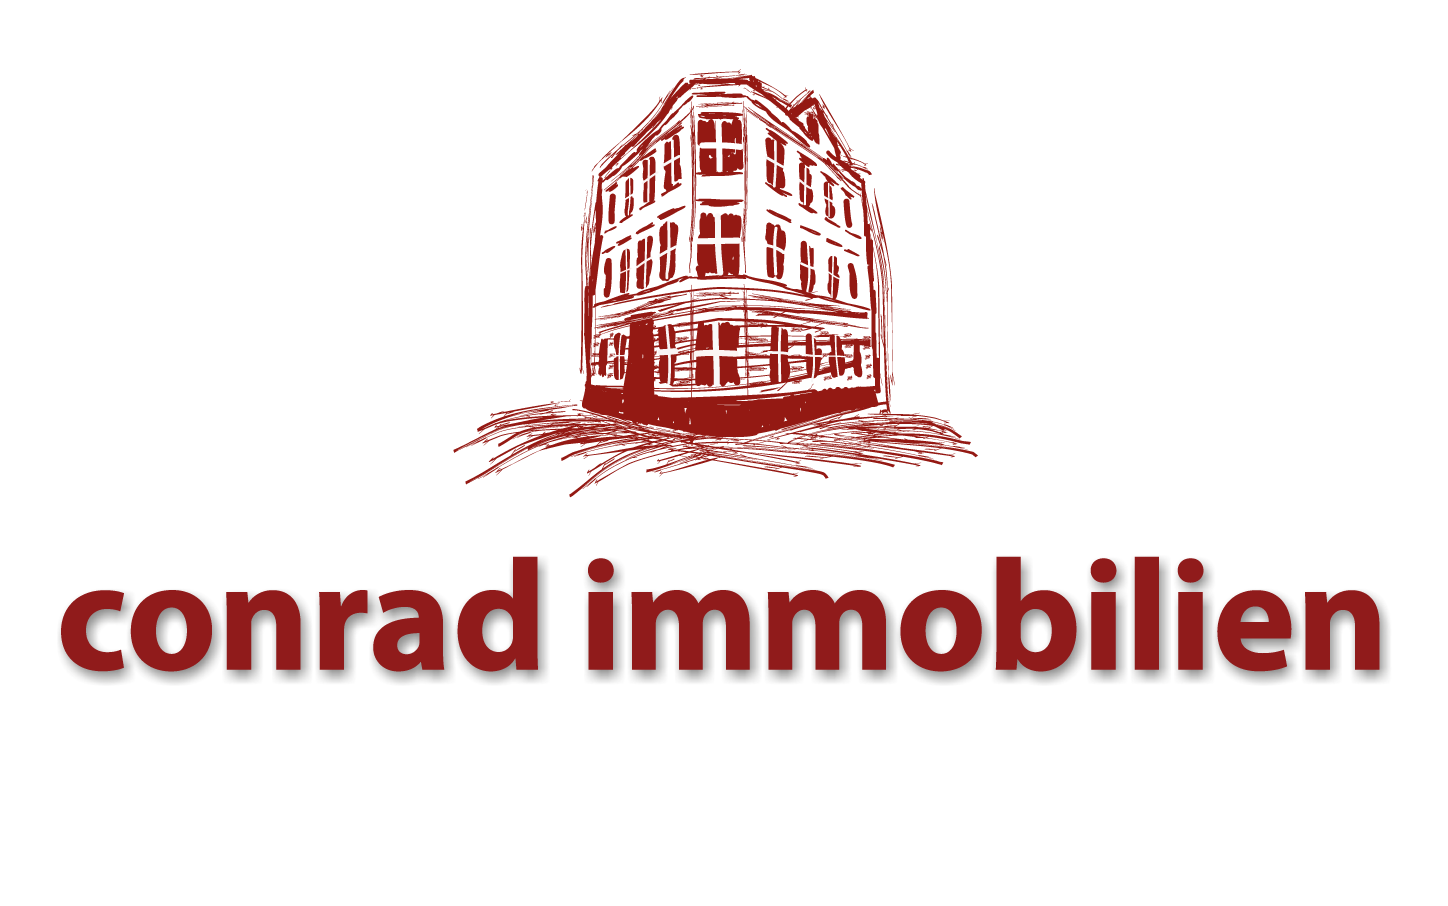 Conrad Immobilien (IVD) in Schmelz